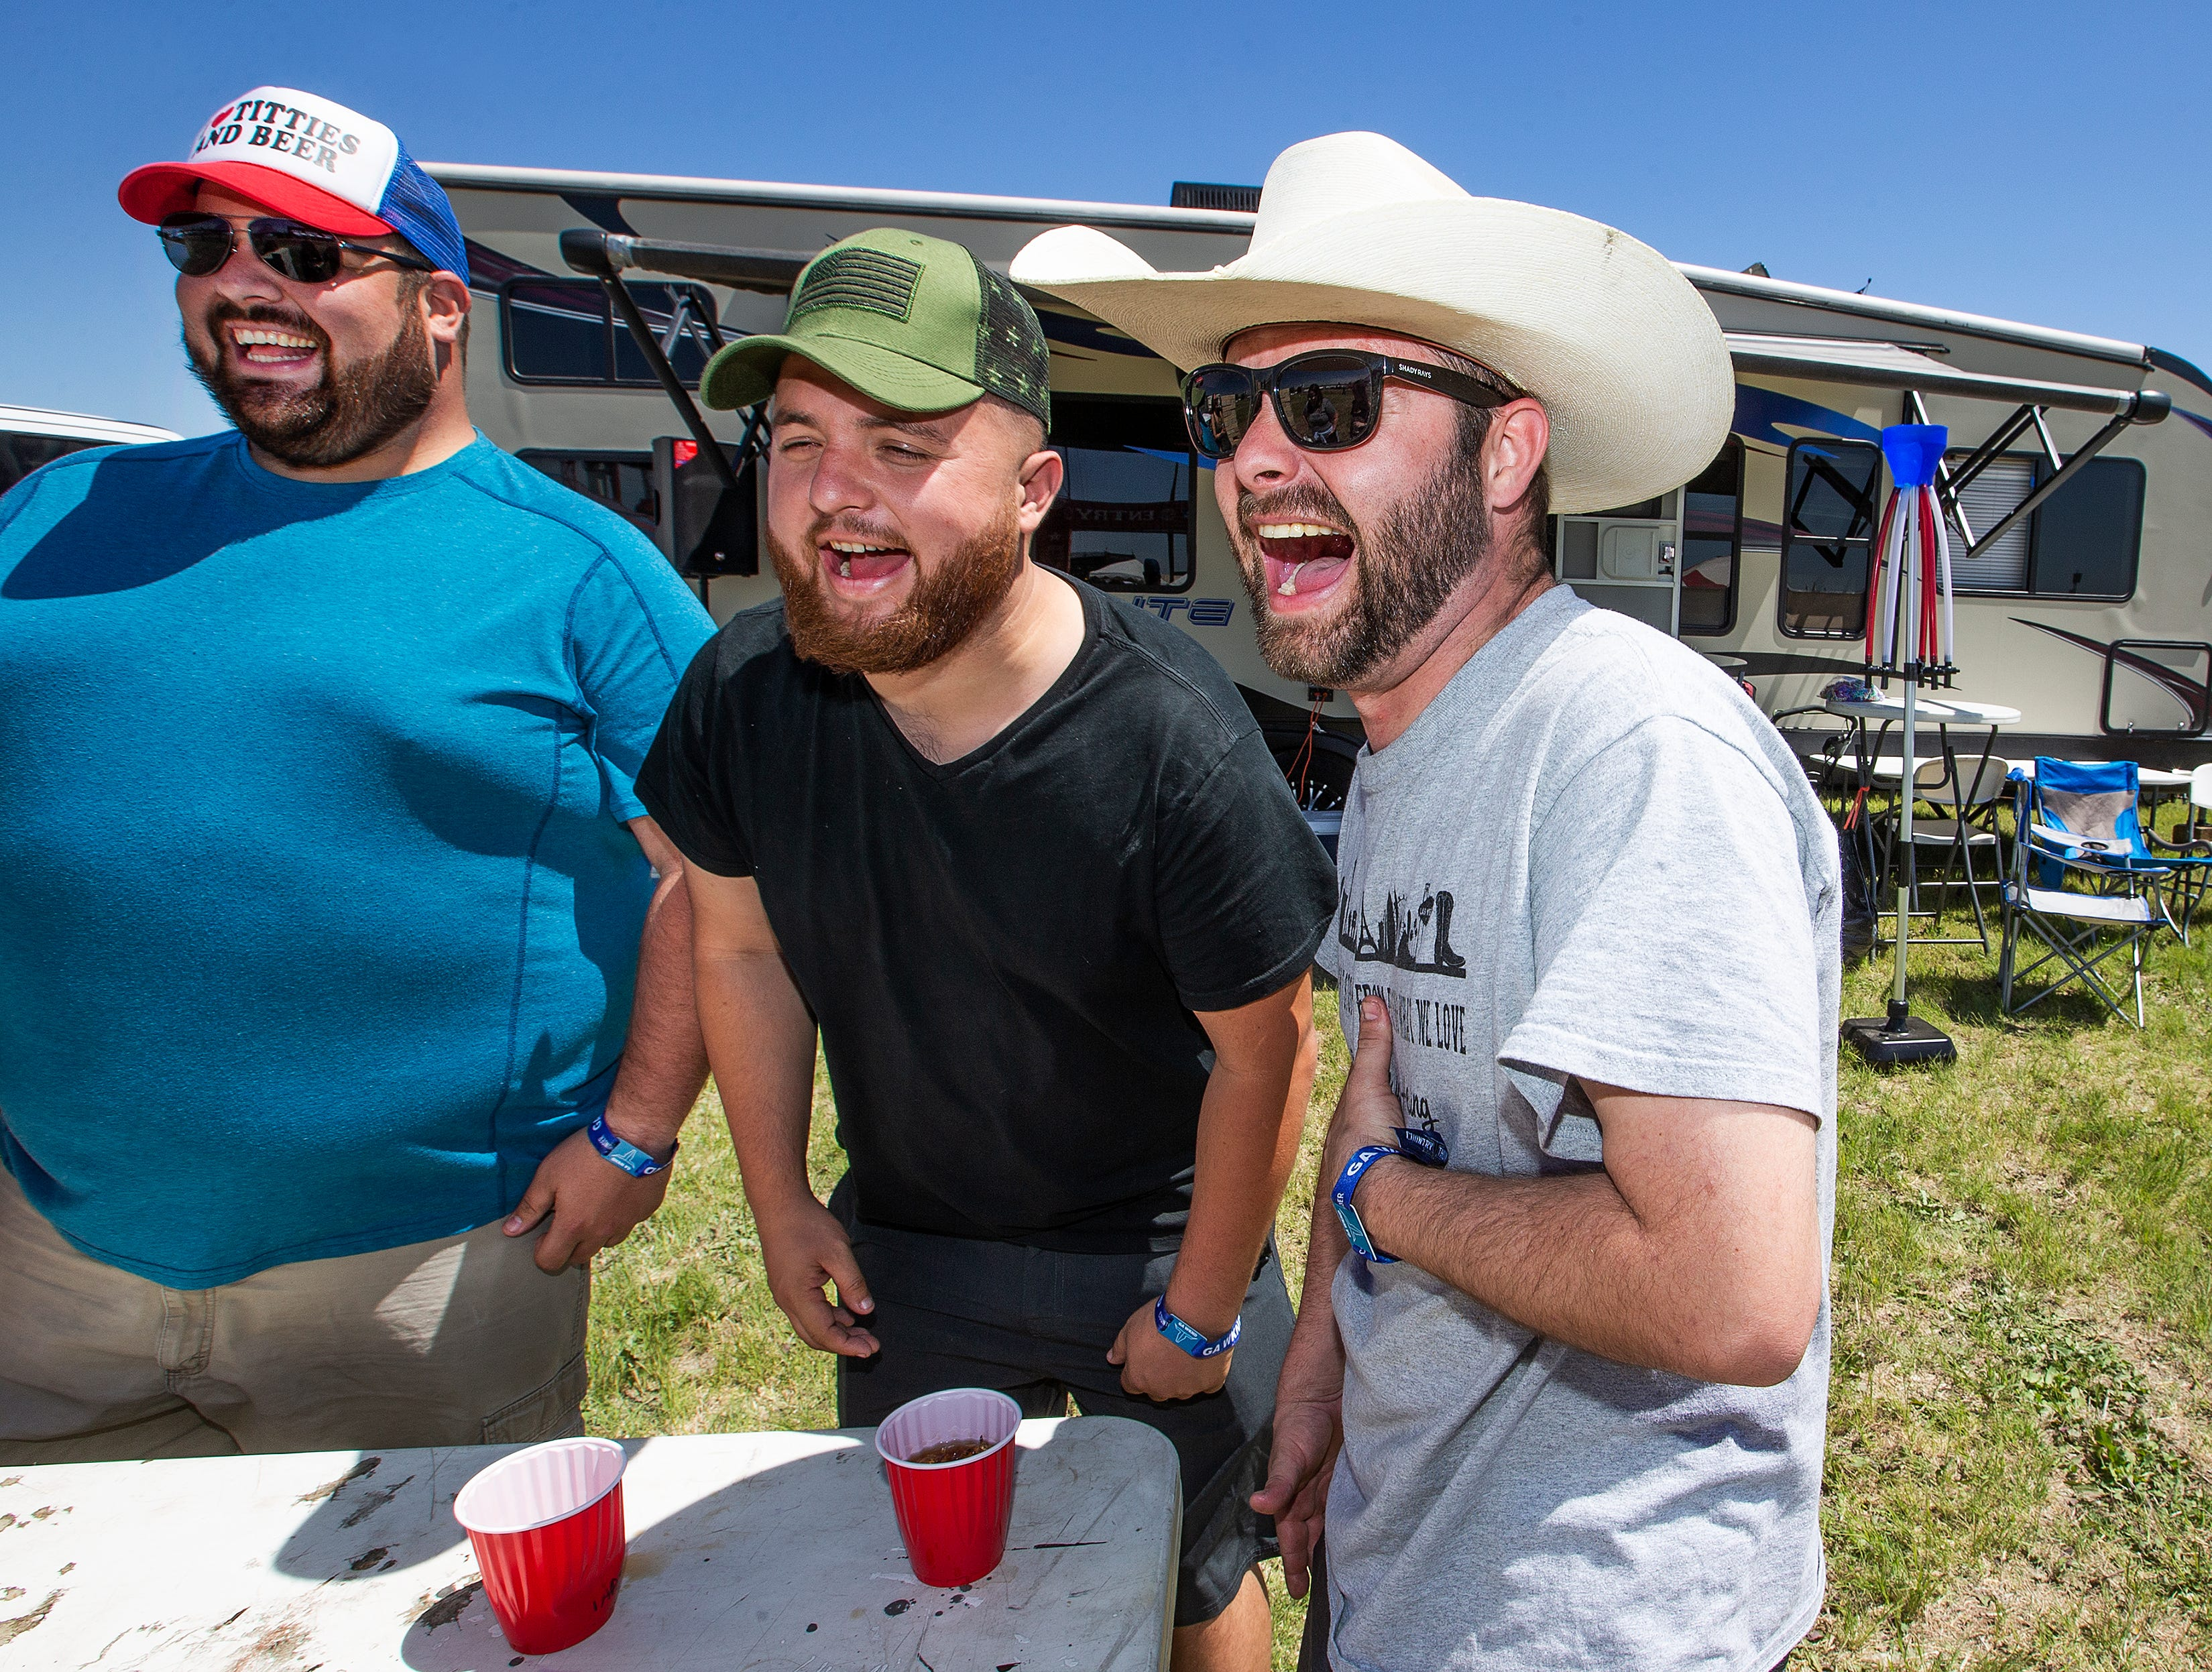 Patrick Feezell, 29, Chandler, Josh Rivera, 28, Phoenix, and Joseph Weaver,28, Henderson, Nevada, have fun at Country Thunder Arizona 2019 Thursday, April 11, 2019.